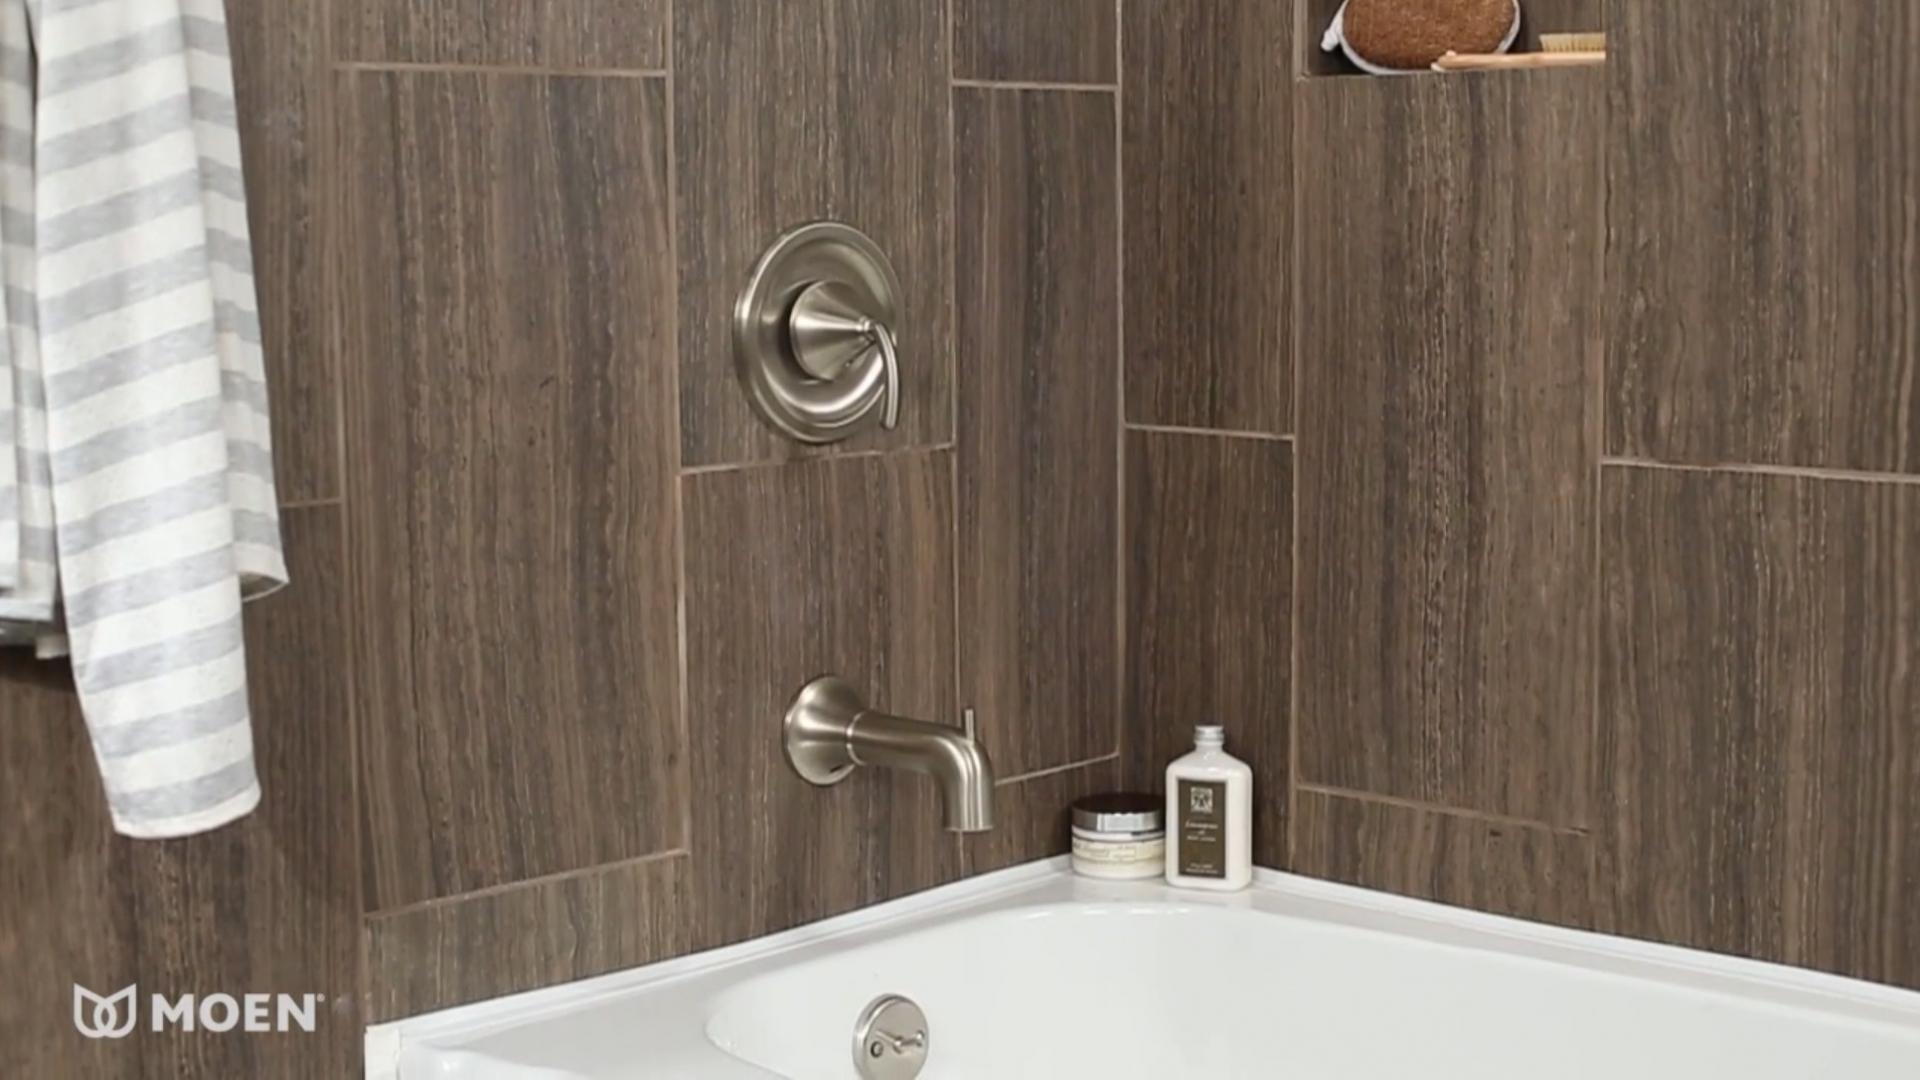 Moen Tub and Shower Faucet